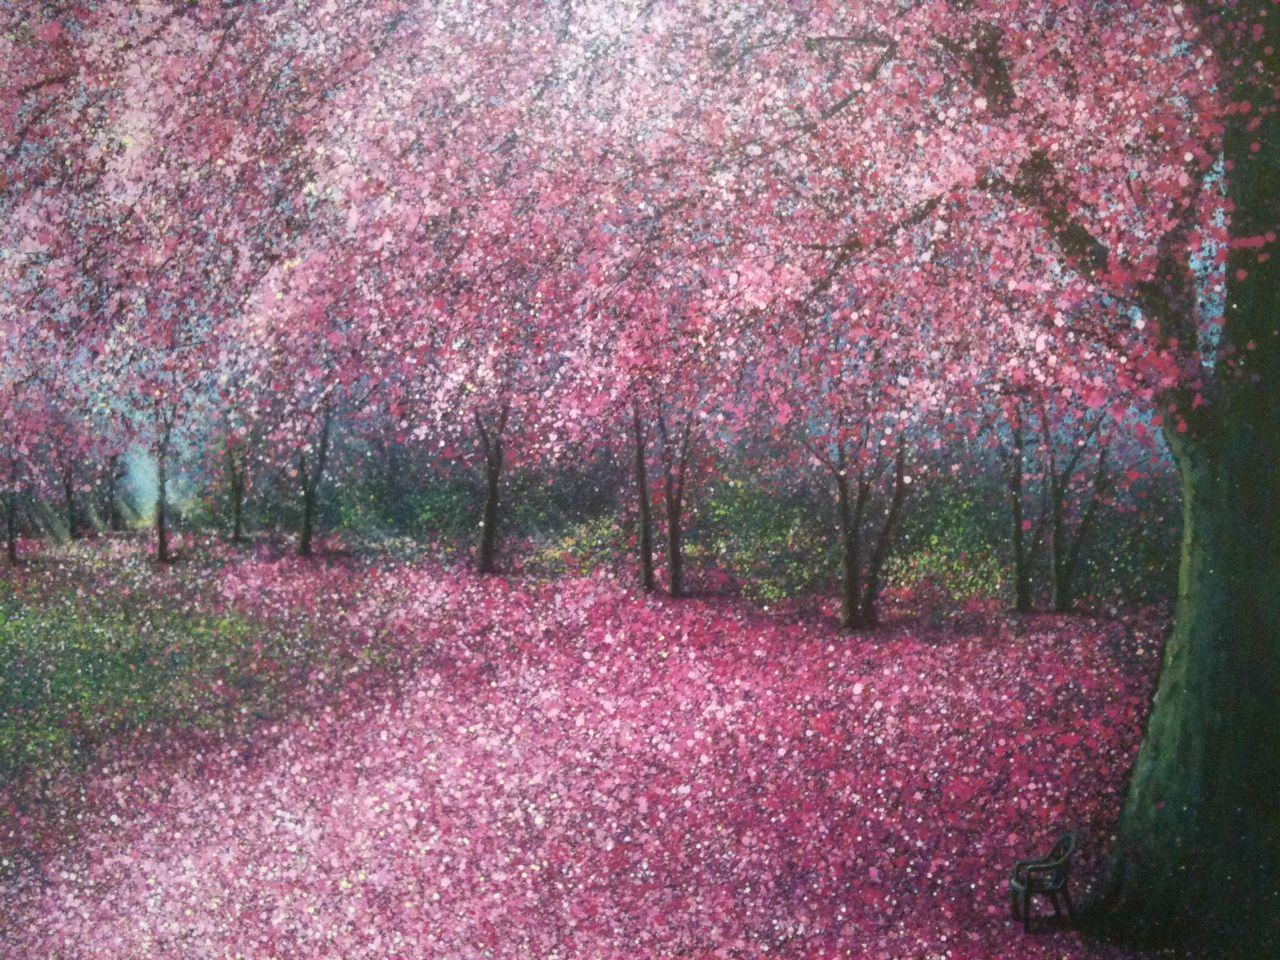 Pin By Katrina Kapustay On Cute Things Cherry Blossom Painting Watercolor Landscape Cherry Blossom